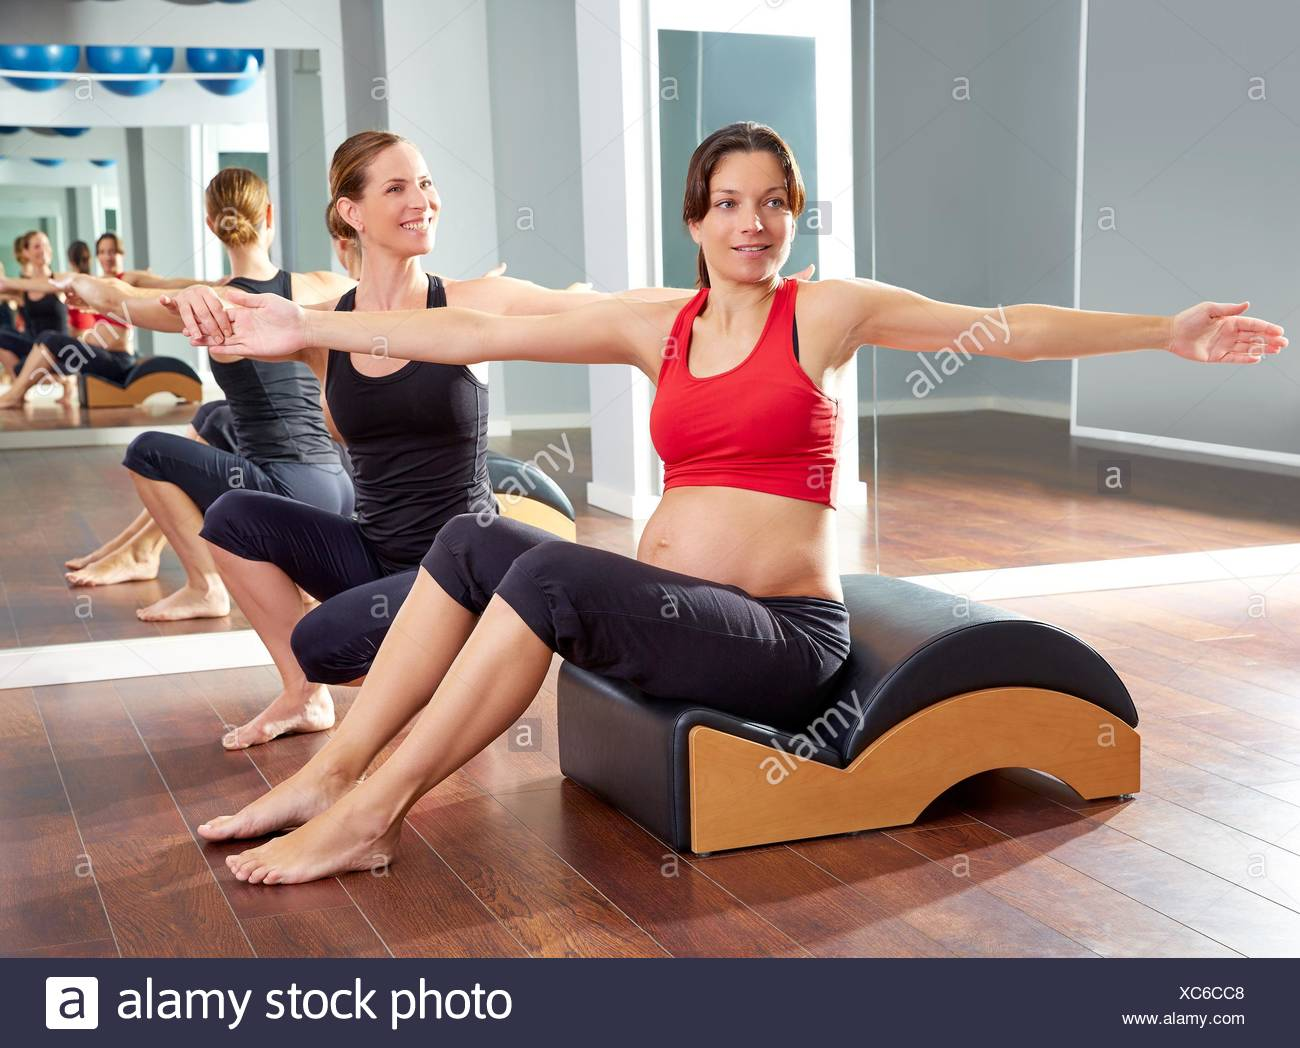 pregnant woman pilates exercise spine twist with Wave corrector and personal trainer. - Stock Image